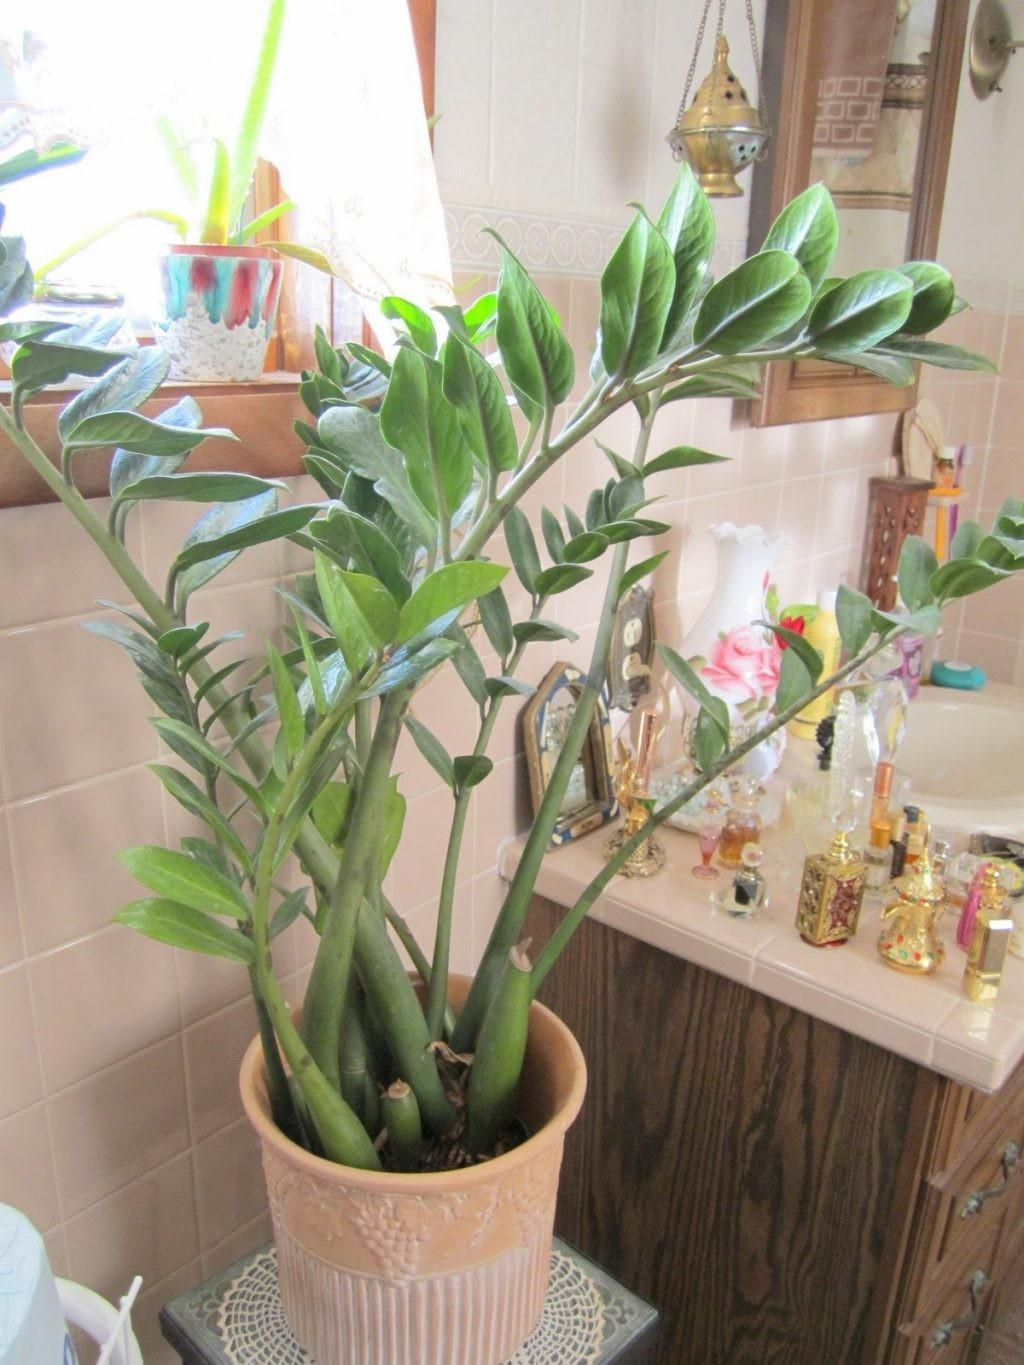 Plants Bathrooms 4804